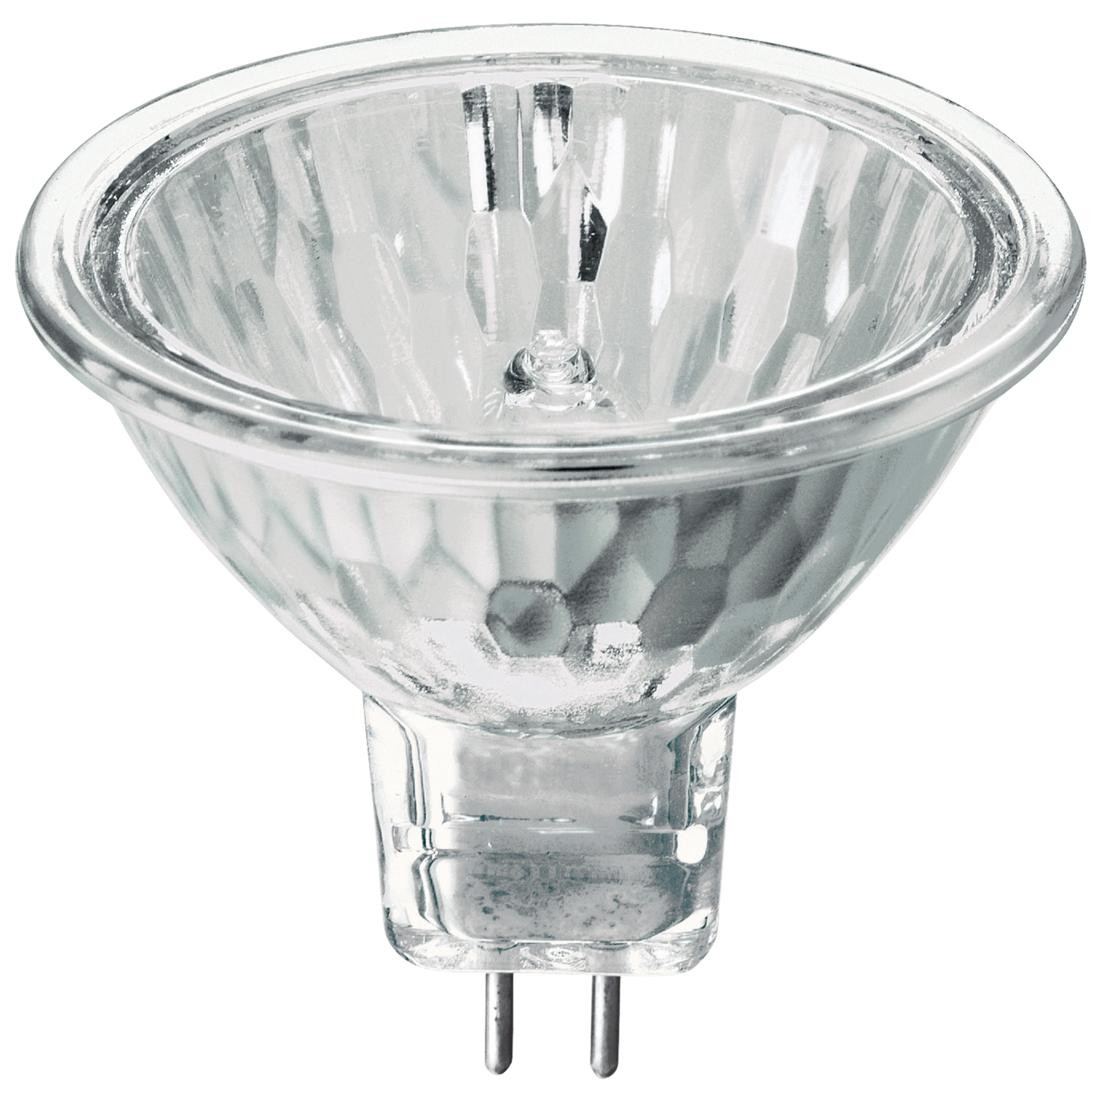 Osram 41860wfl 20 watt mr16 halogen flood bulb Mr16 bulb